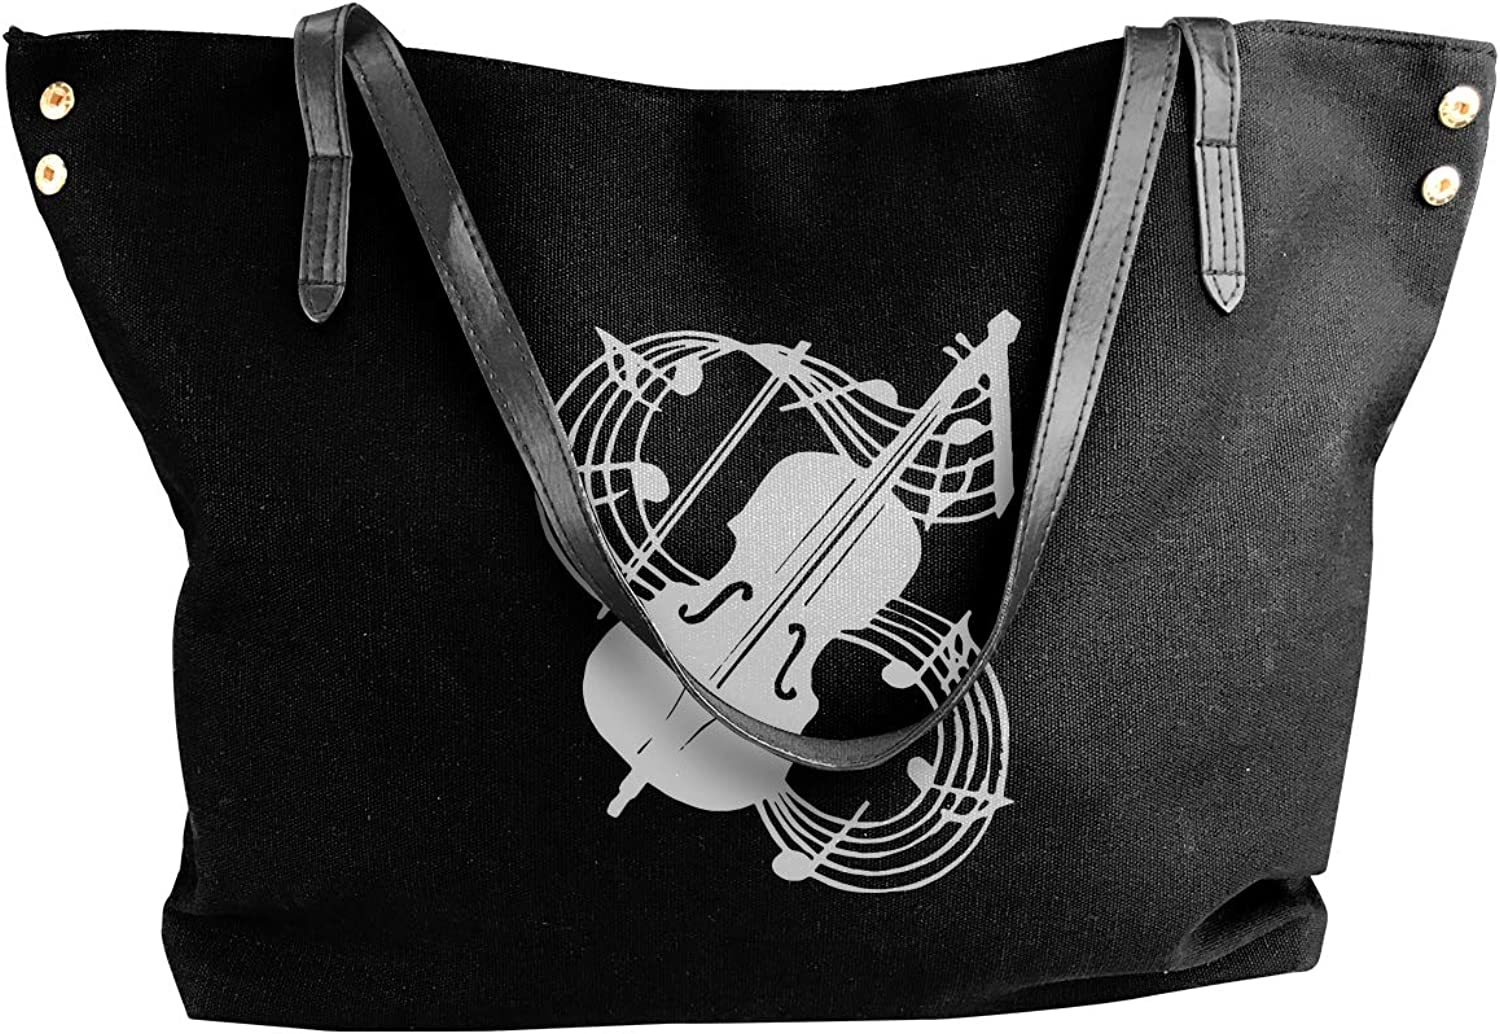 Athletic Musical Note Women'S Casual Canvas Shoulder Bag For Shopping Big Shopping Bag